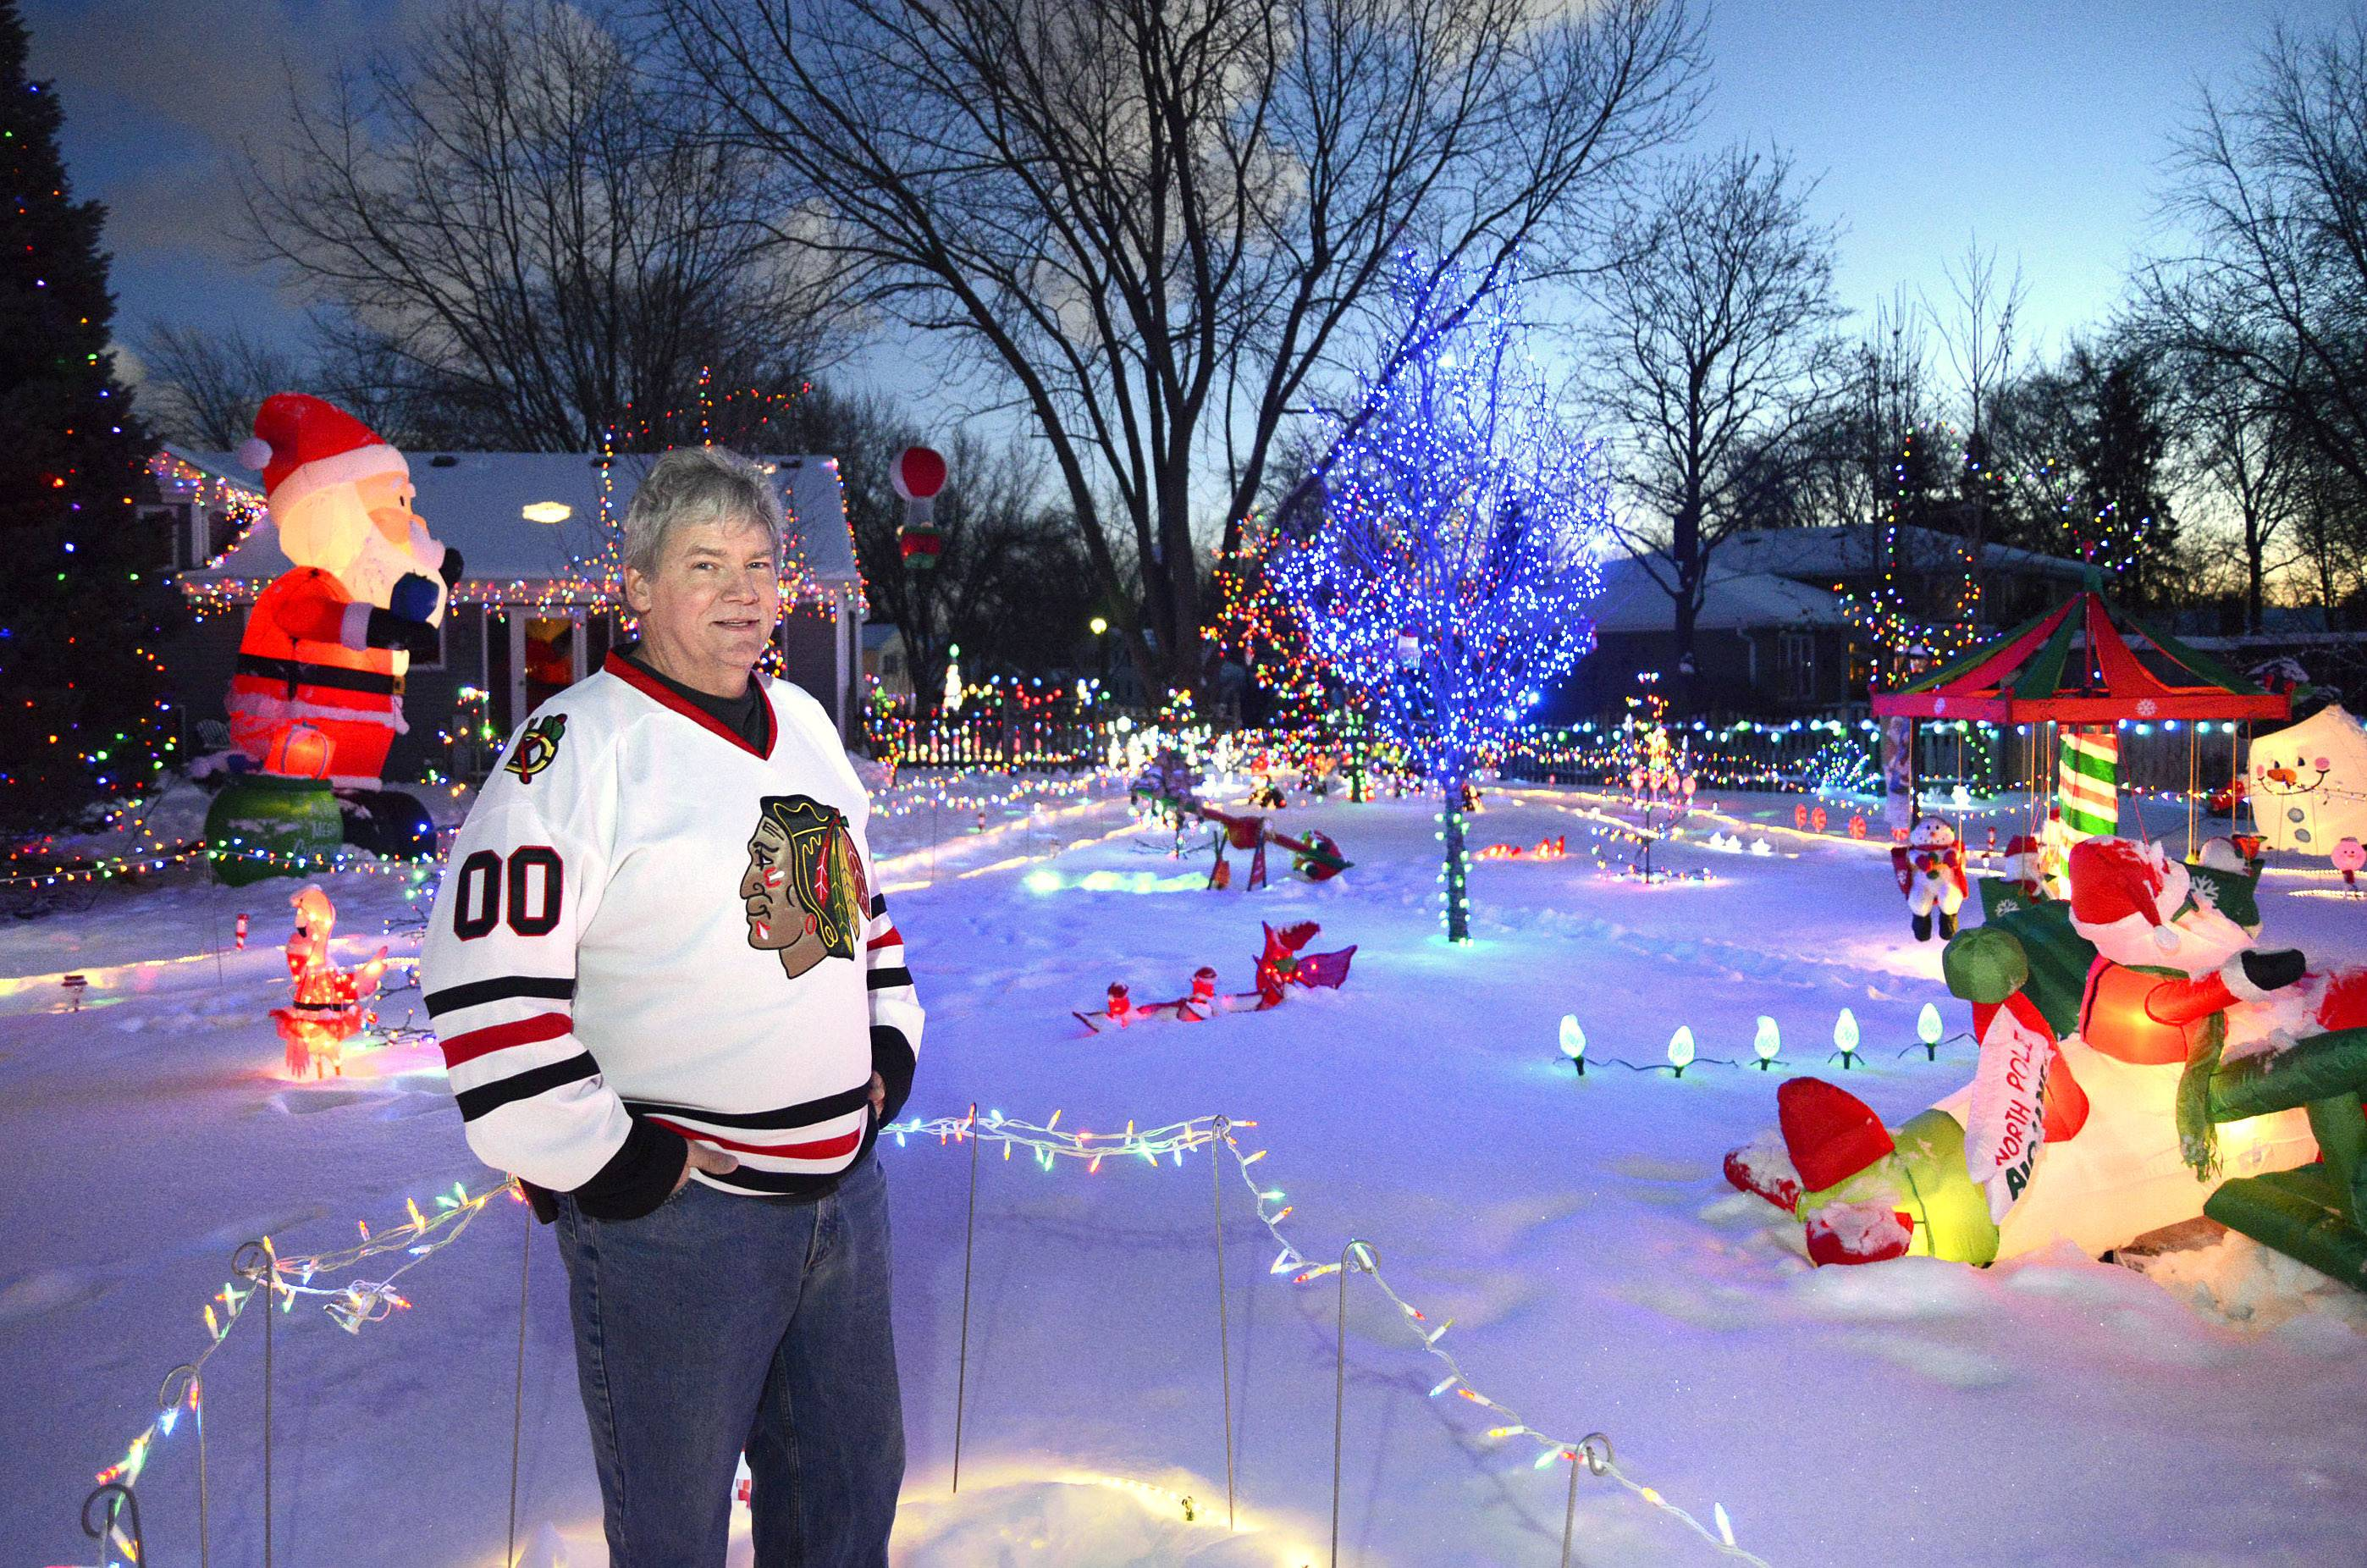 Batavia 1st Ward Alderman Garran Sparks, who is also known for his lavish display of Christmas lights, announced Monday he is resigning because he is moving to North Aurora.